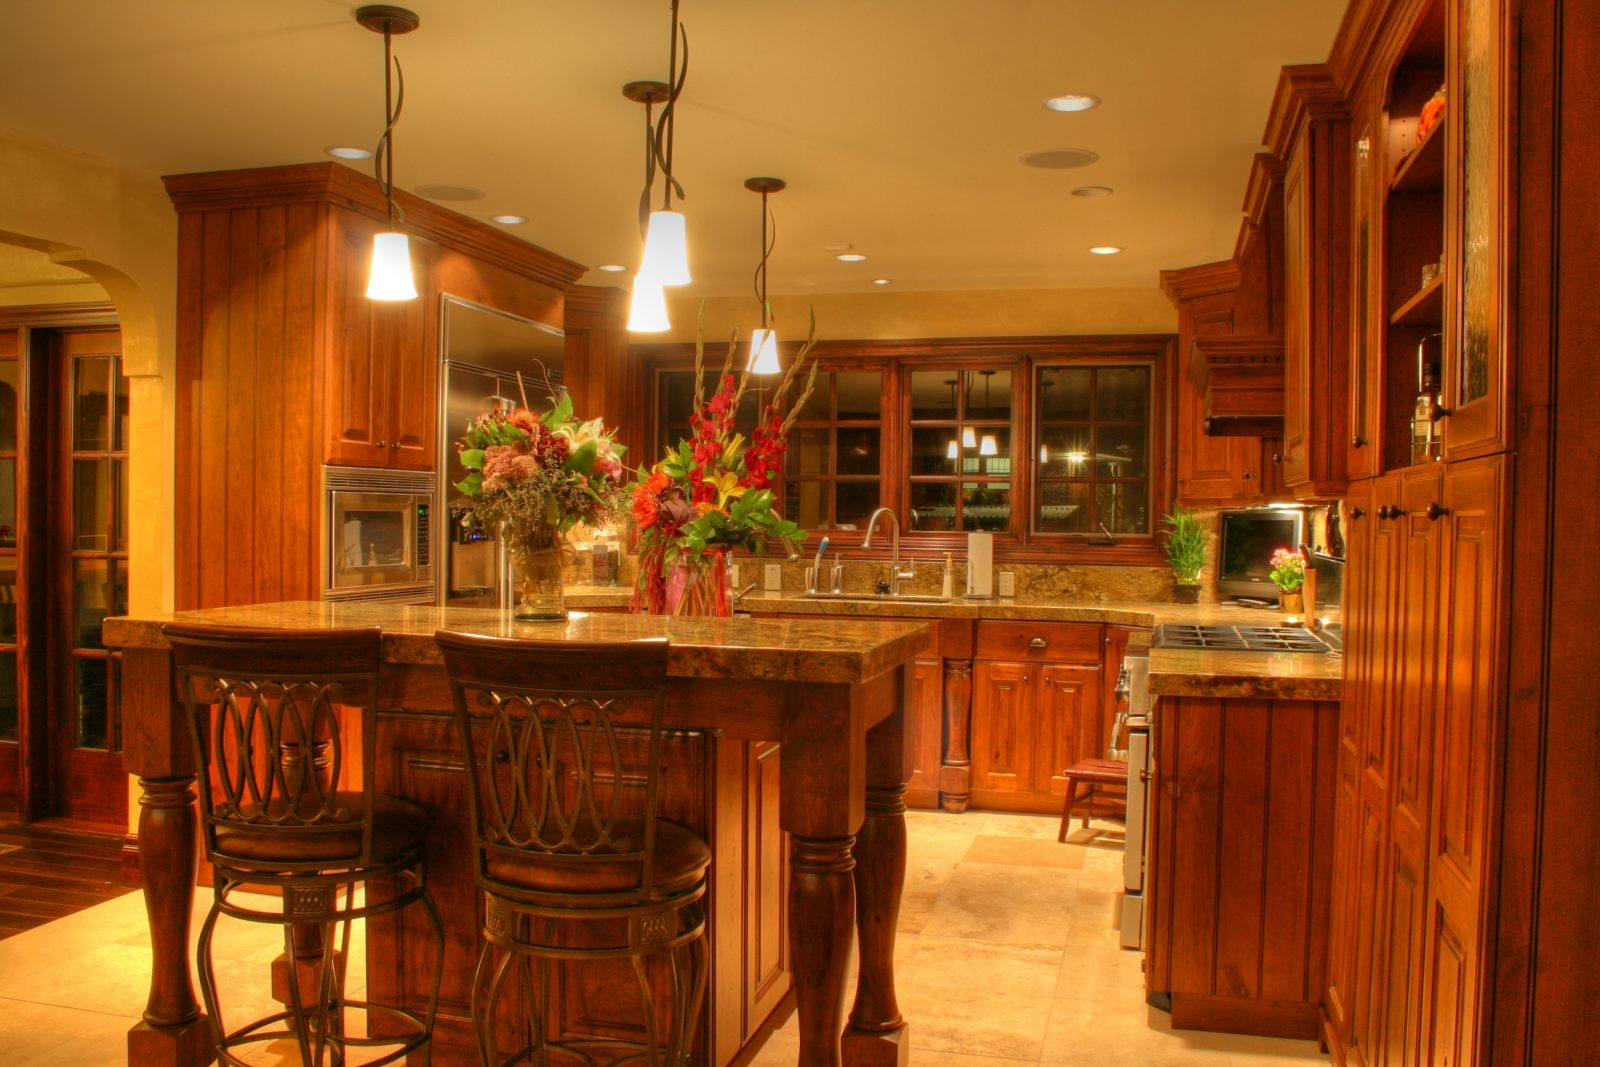 Kitchen Designs & Remodeling Addition Dining Room Before Remodel Design | Renovation Design Group